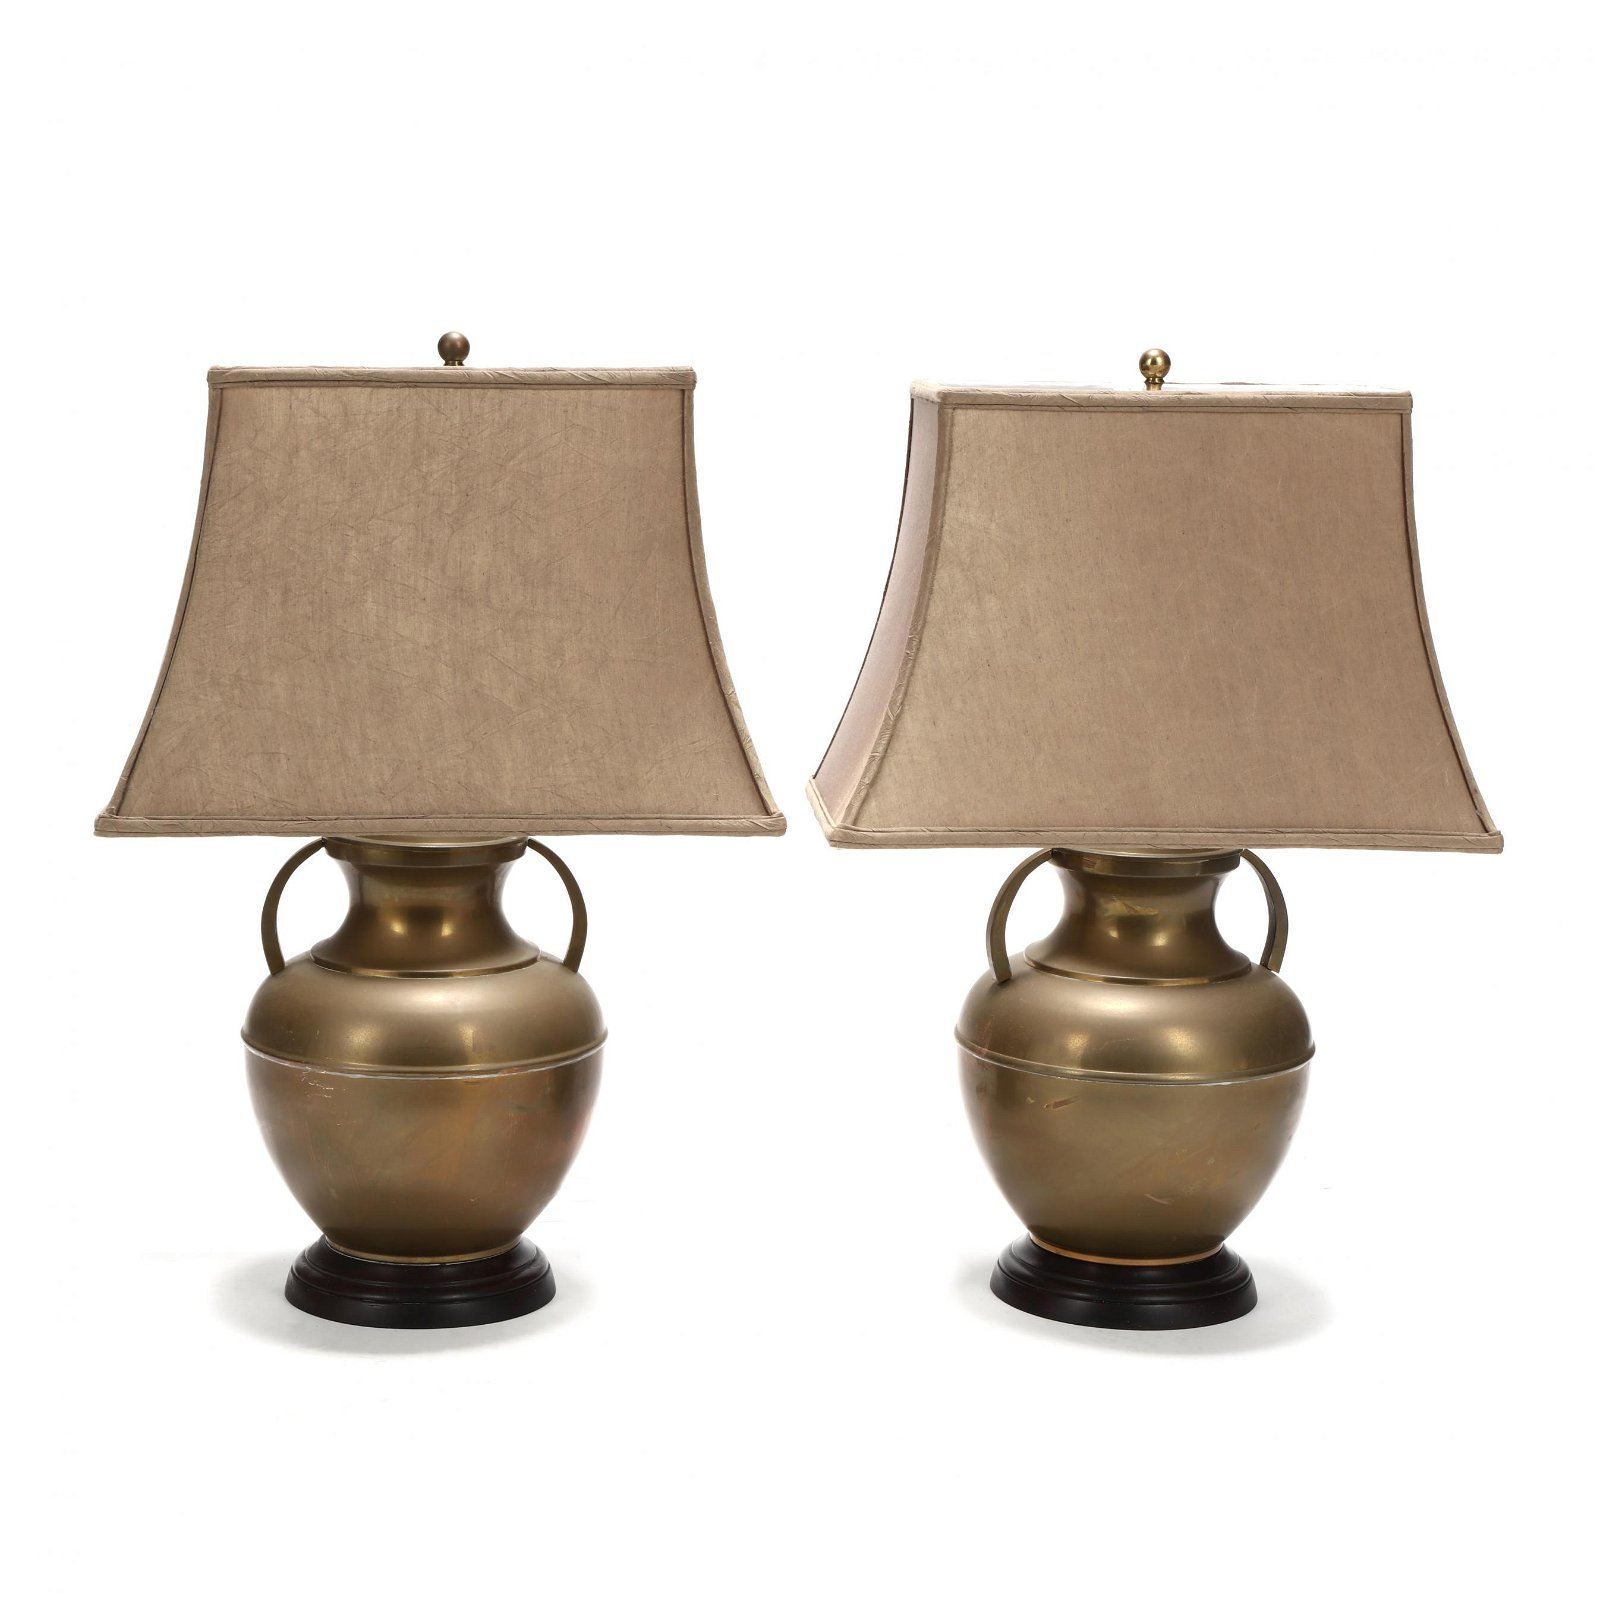 A Pair of Chinese Style Brass Urn Table Lamps